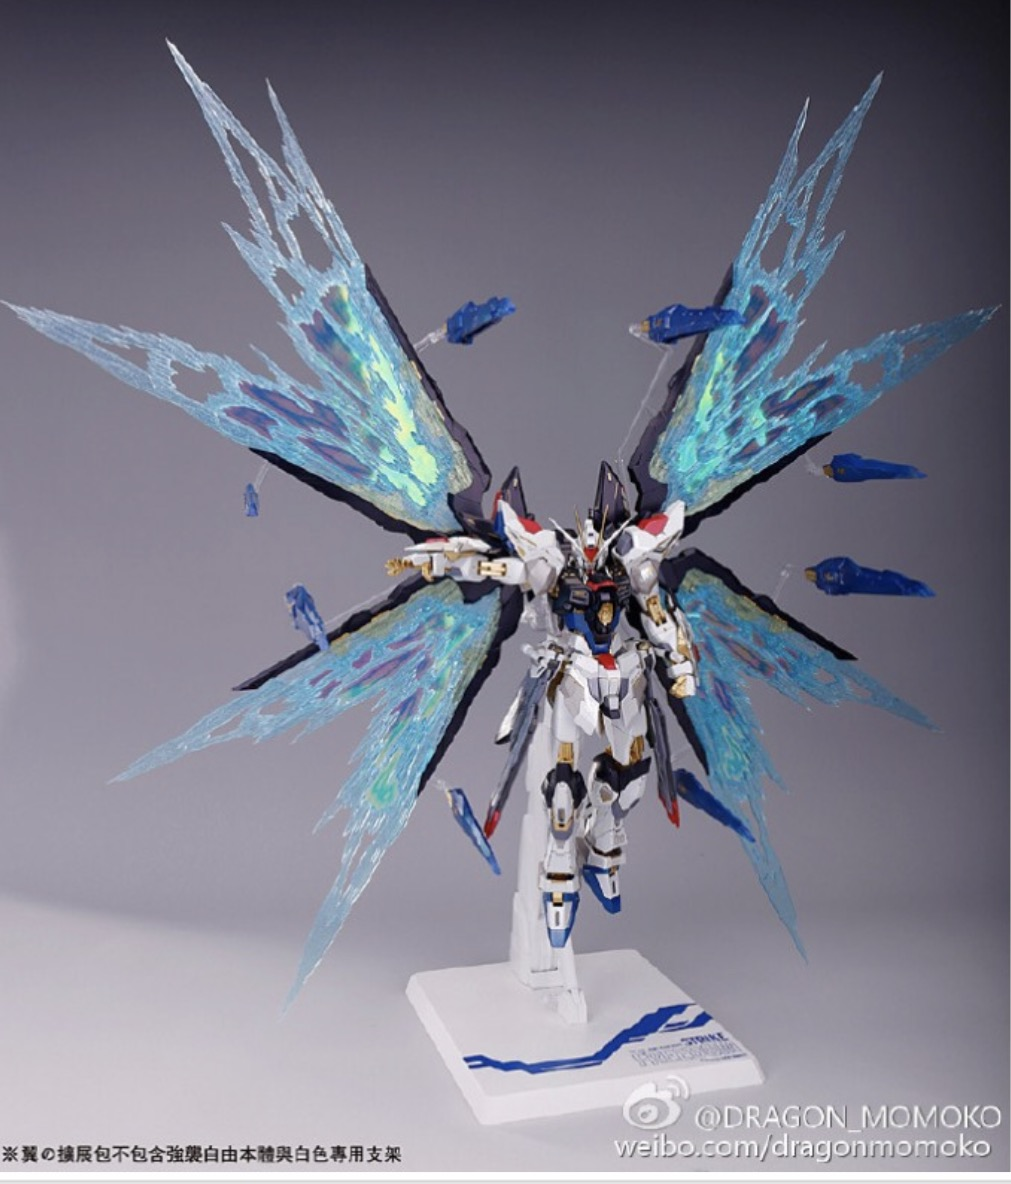 [ZGFM-X20A] MG 1/100 Strike Freedom Ver.MB + Wing Expansion Effect parts of Strike Freedom , Destiny + Base [Dragon Momoko]